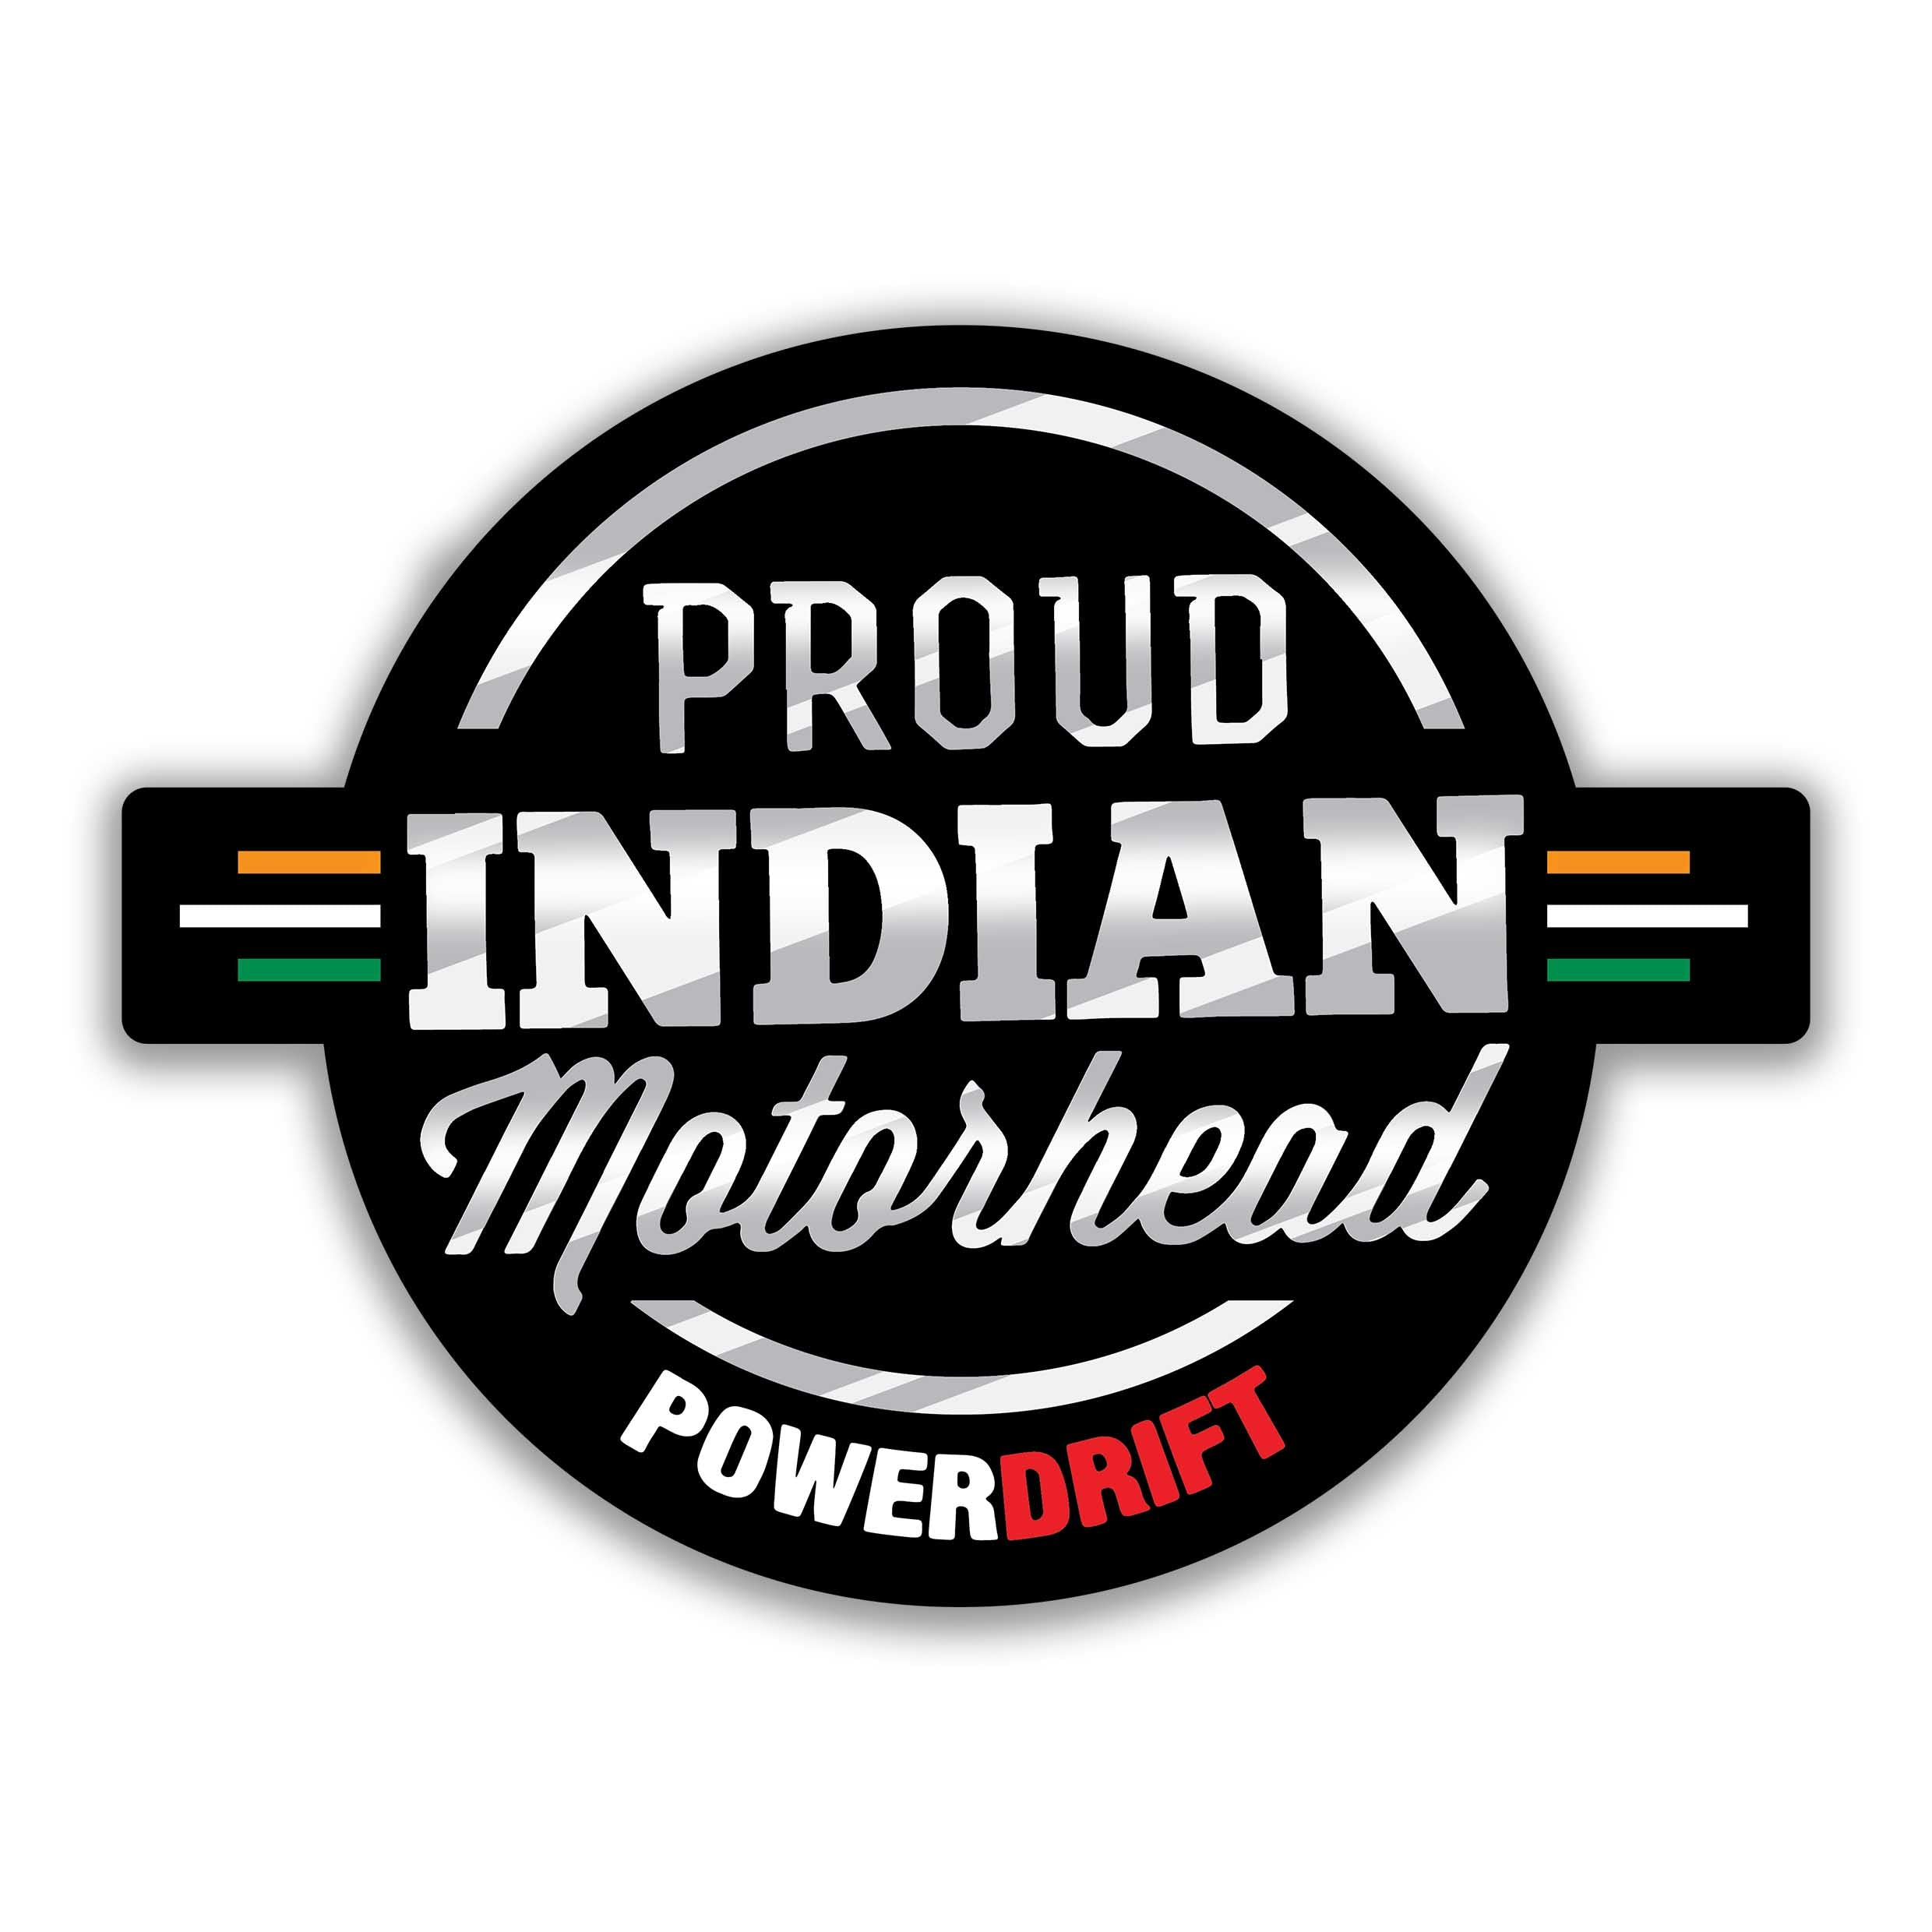 Buy-Proud Indian Motorhead: PowerDrift-Stickers| 100kmph